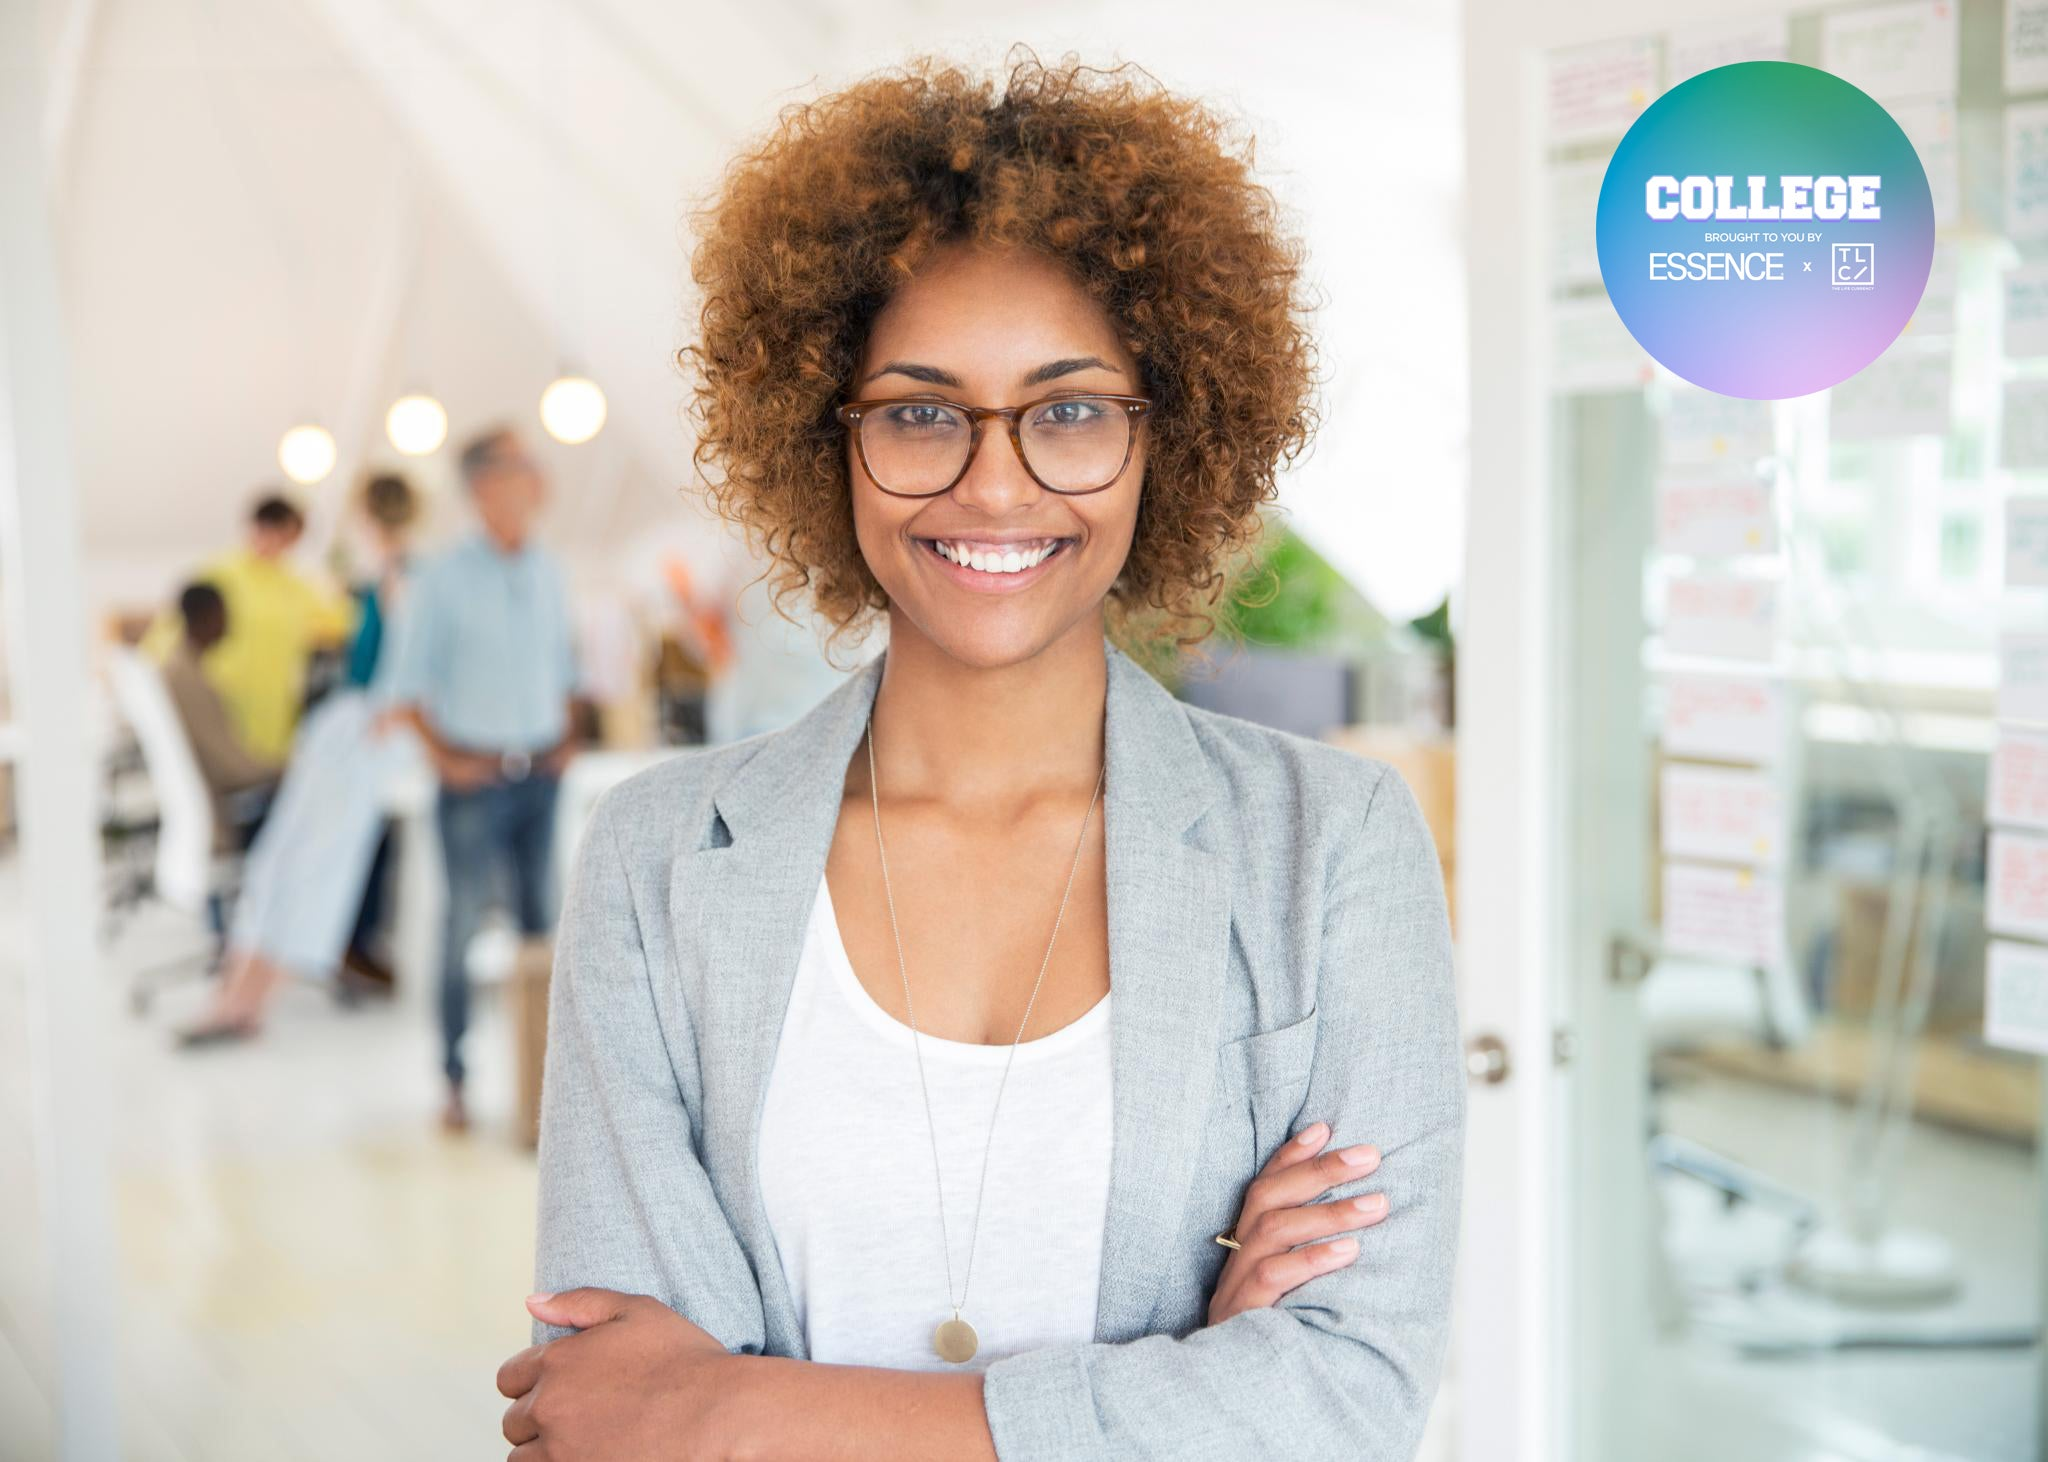 4 Ways Being An HBCU Grad Can Benefit Your Job Search